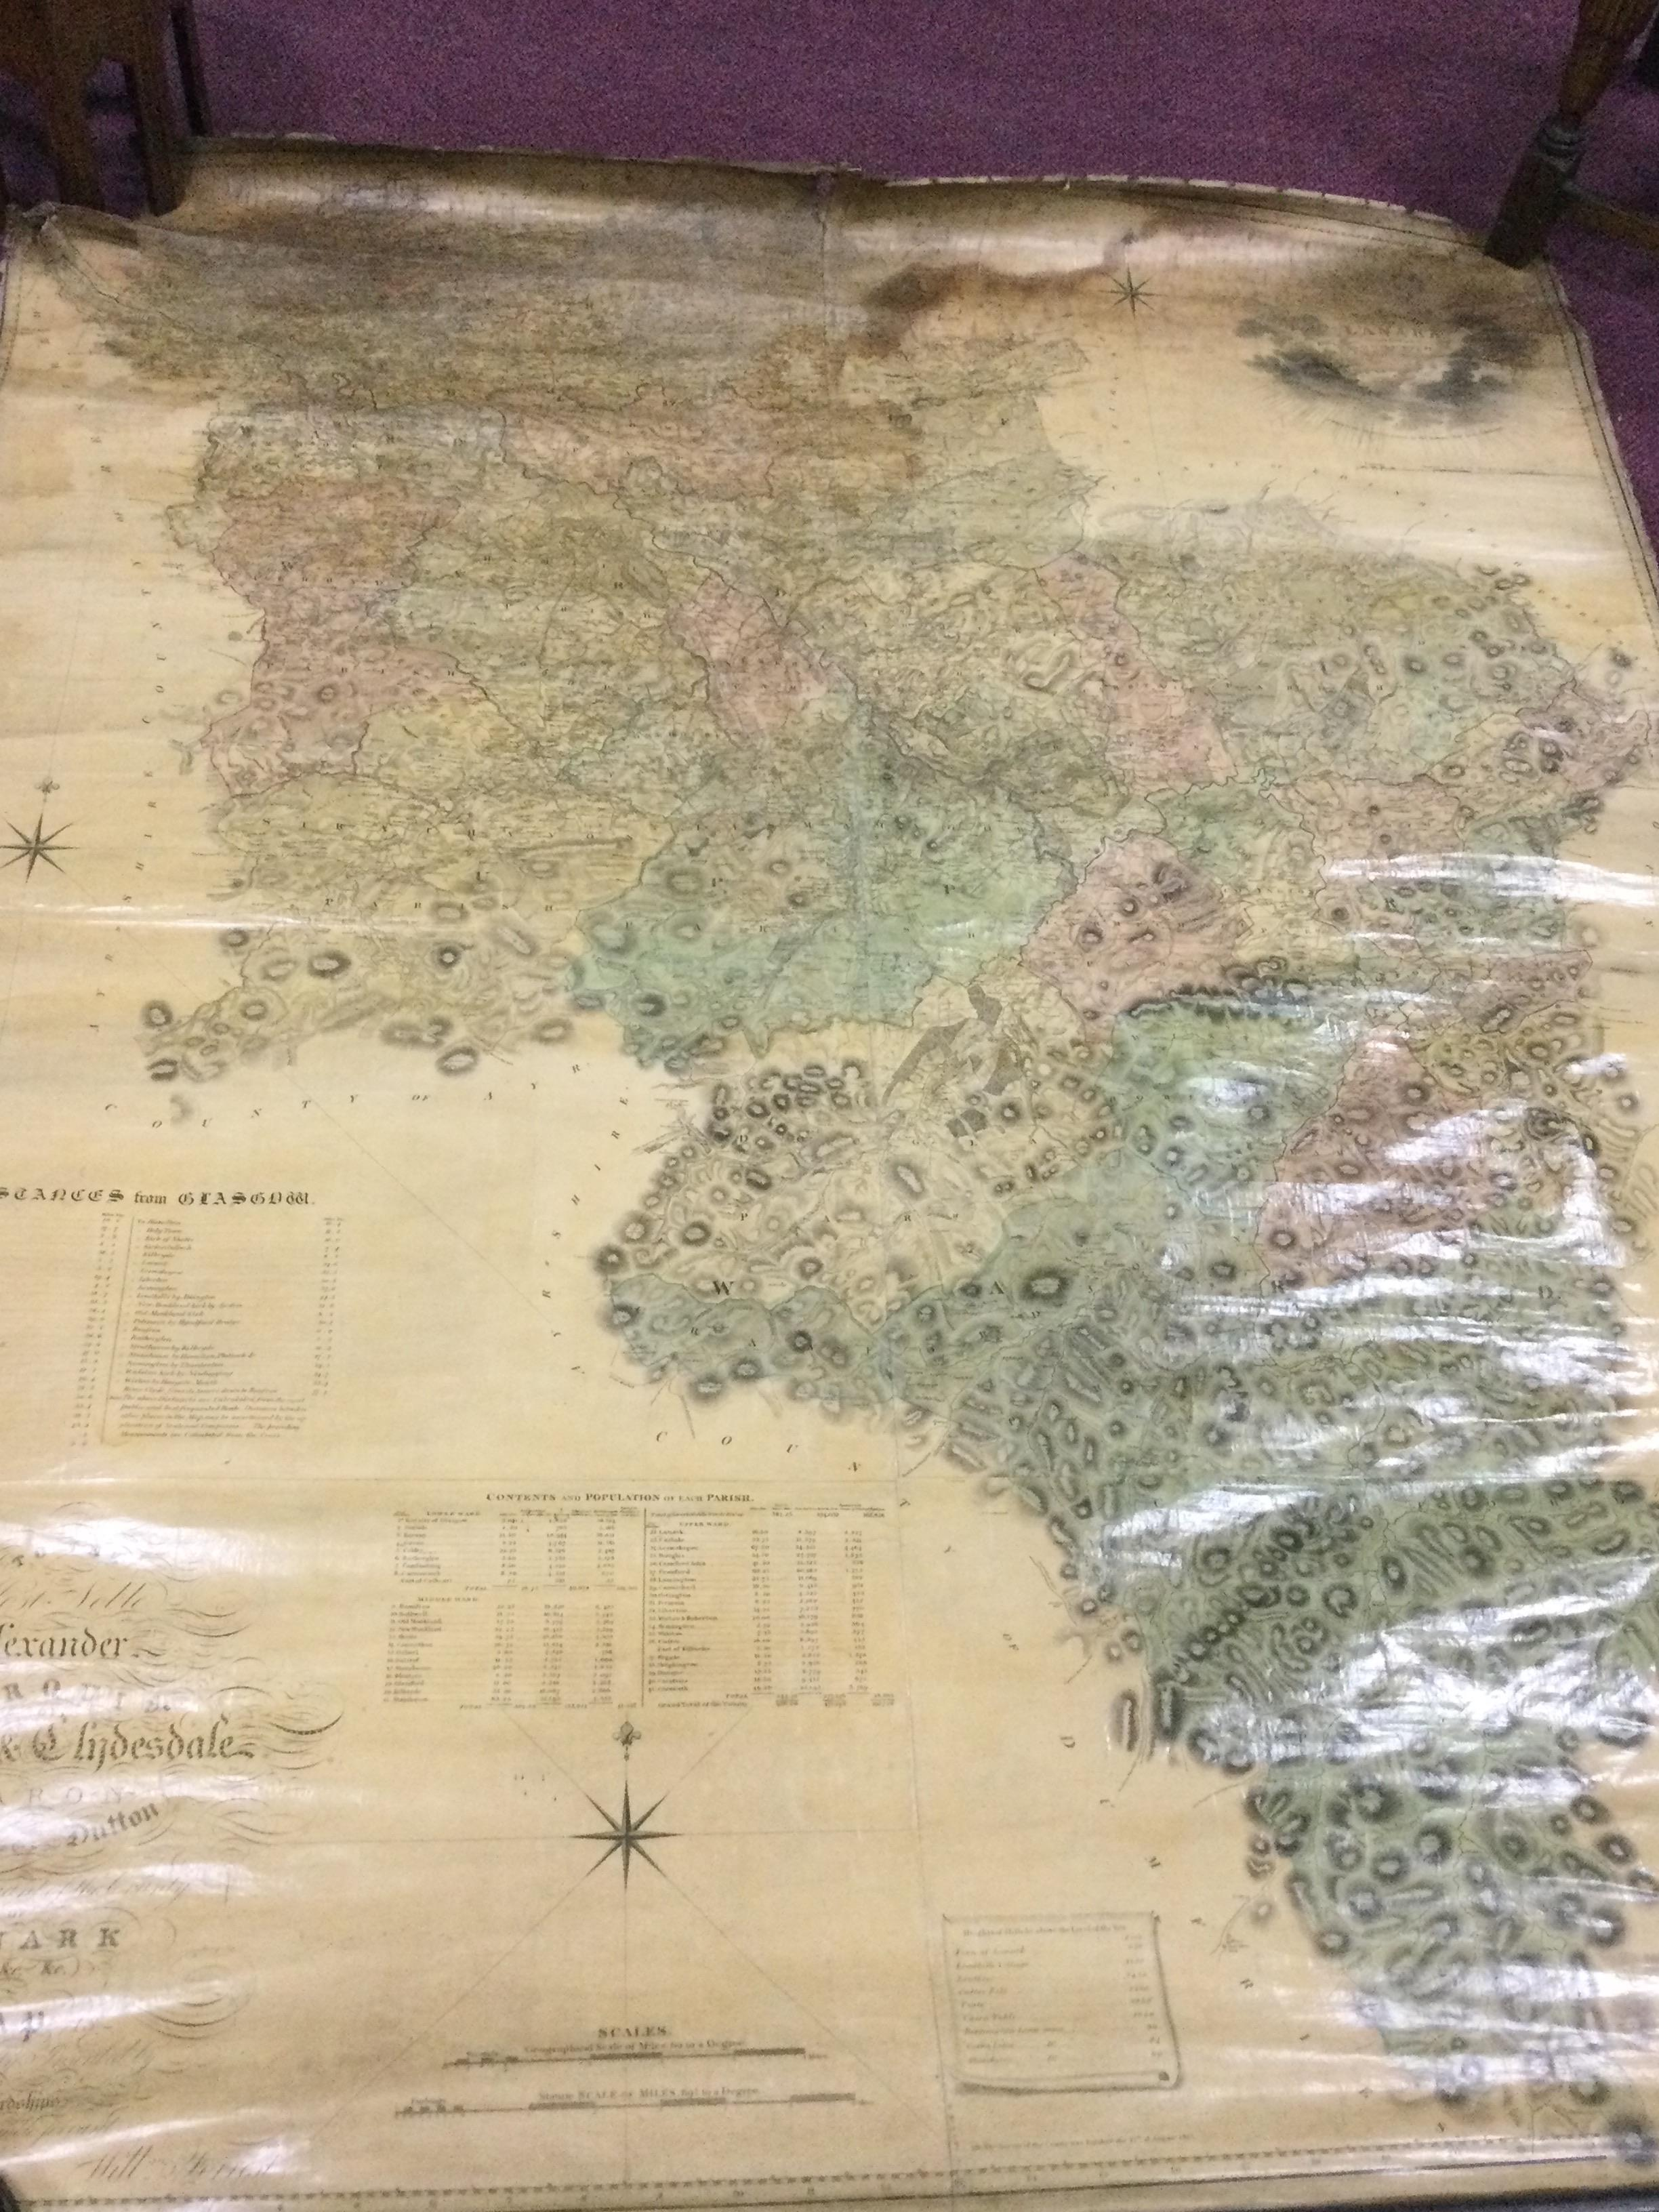 A LARGE 19TH CENTURY COUNTY OF LANARK MAP